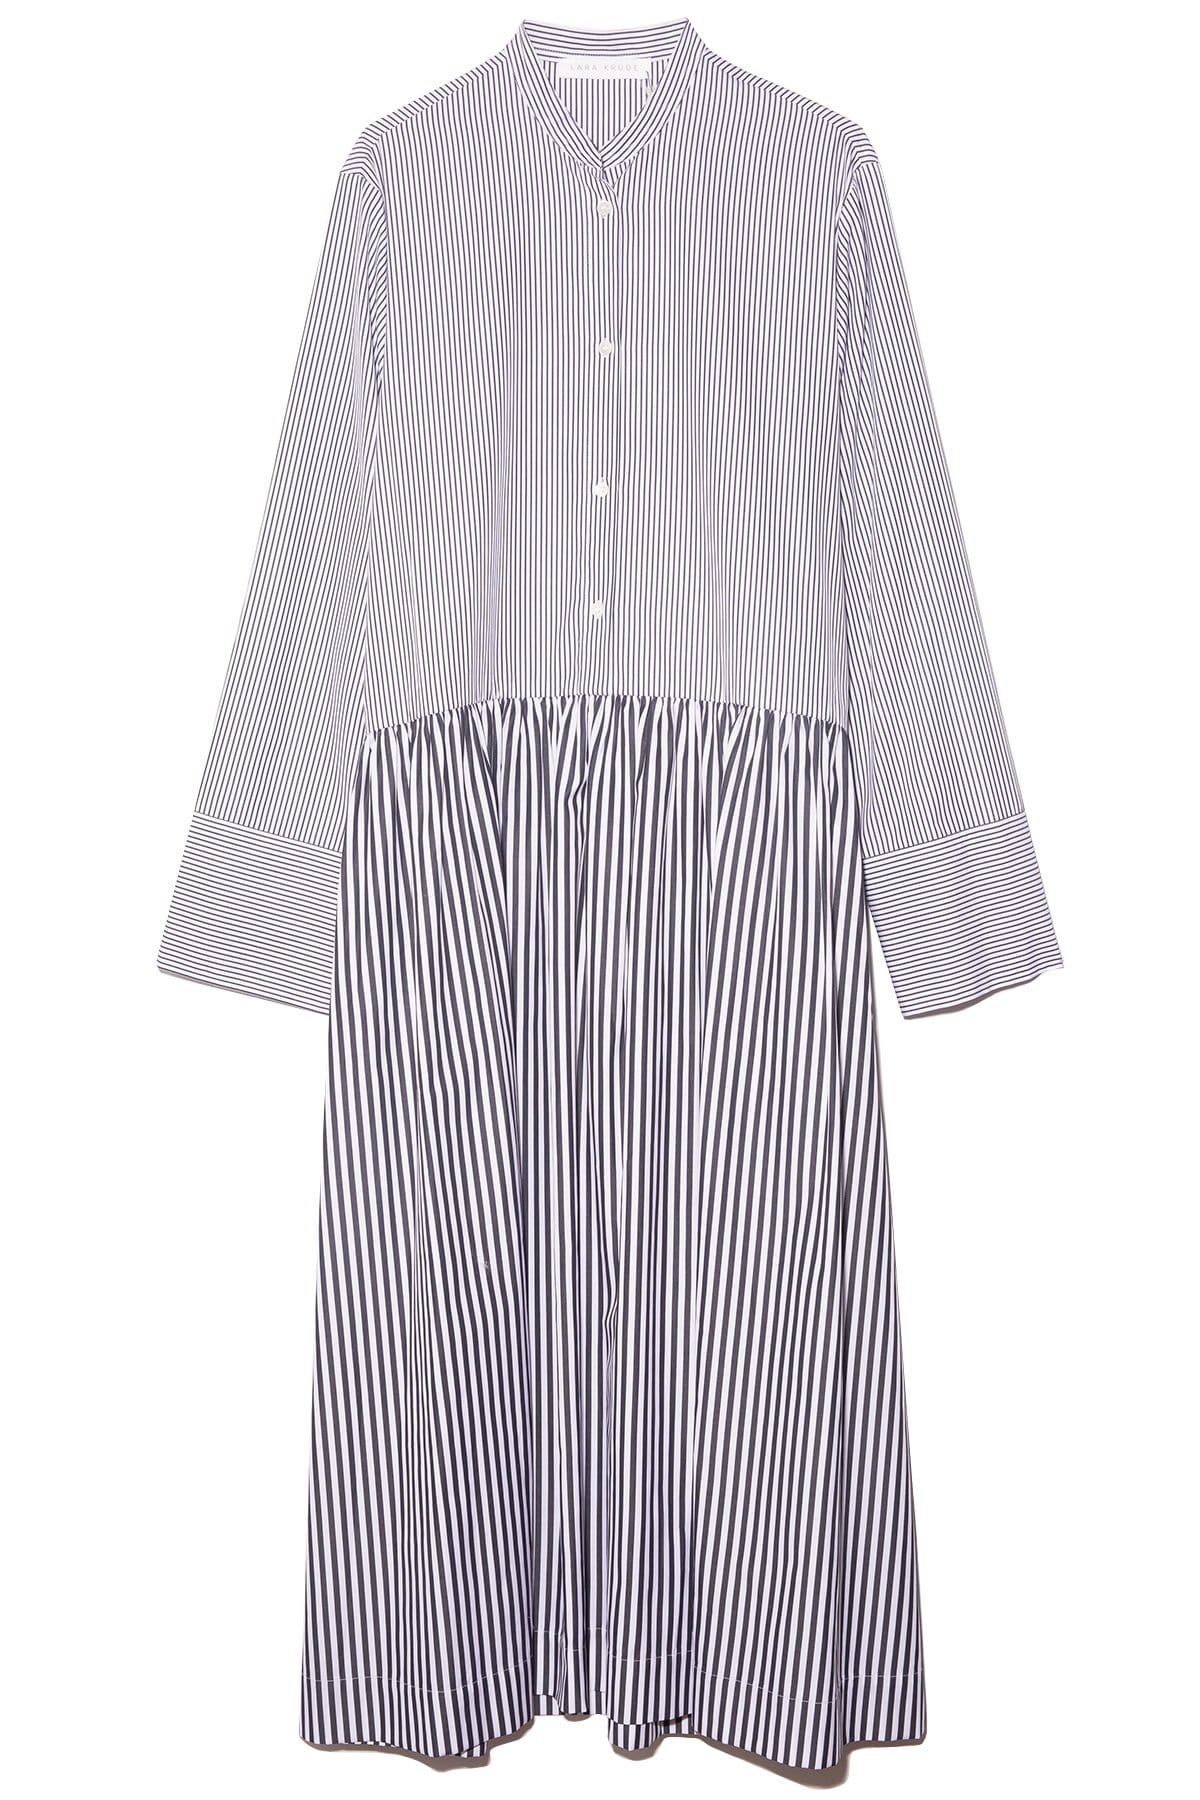 Cotton Dropped Waistline Striped Print Long Sleeves Shirt Dress